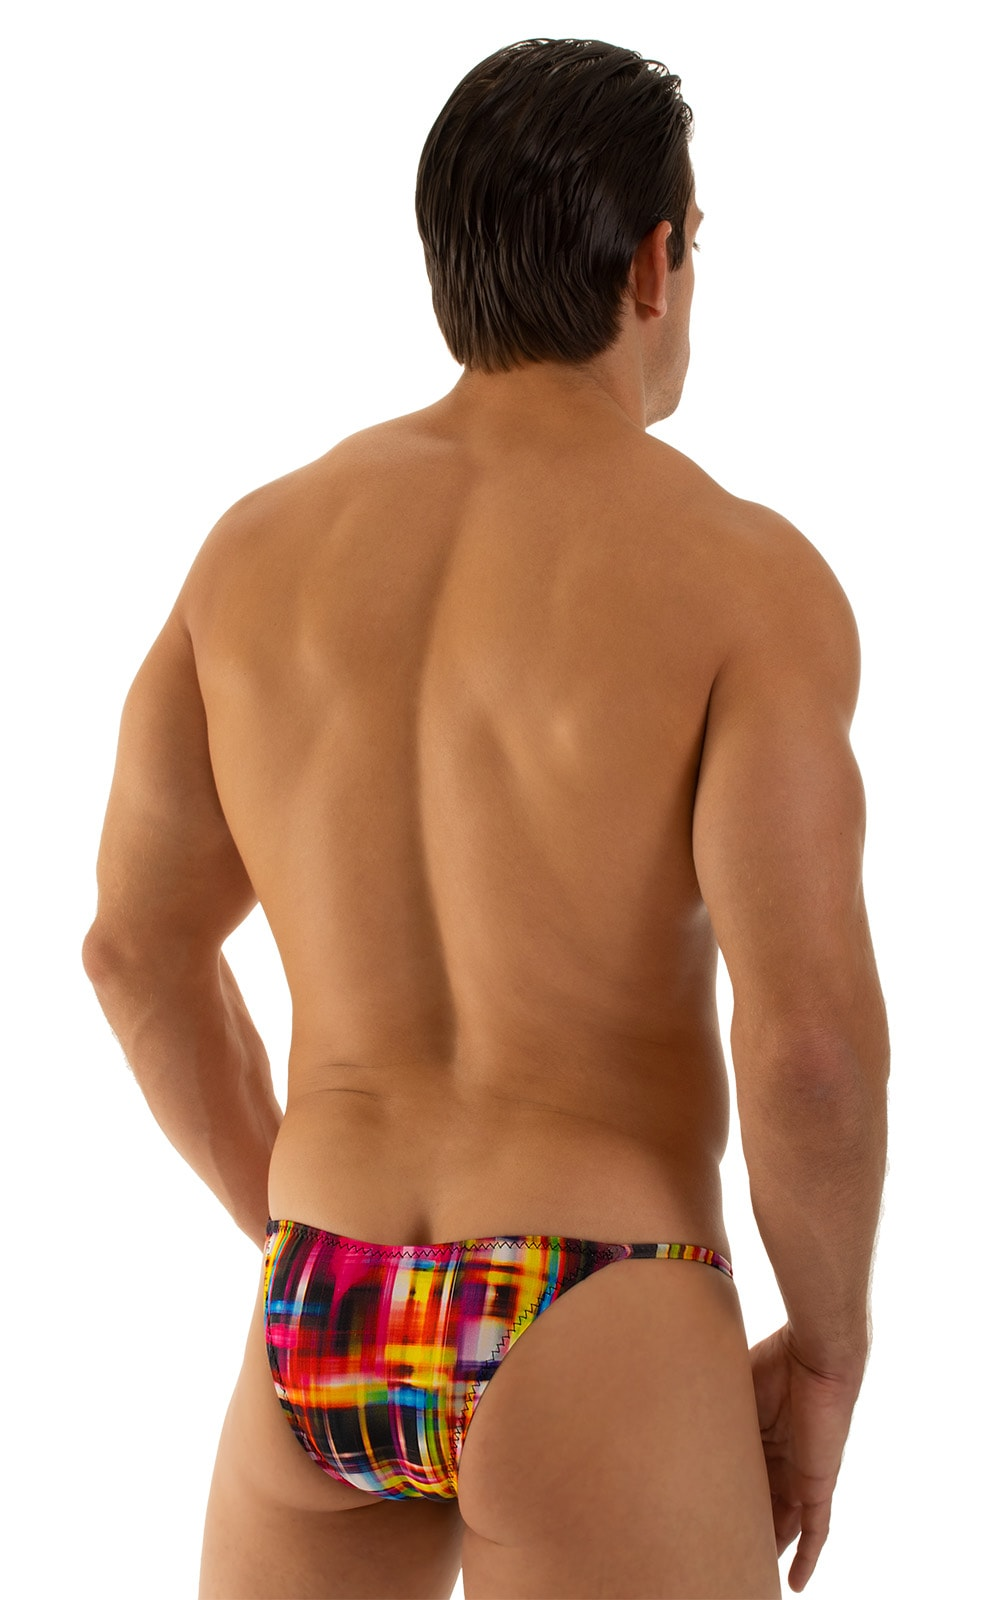 Stuffit Pouch Half Back Tanning Swimsuit in Semi Sheer ThinSKINZ Optic Plaid 3